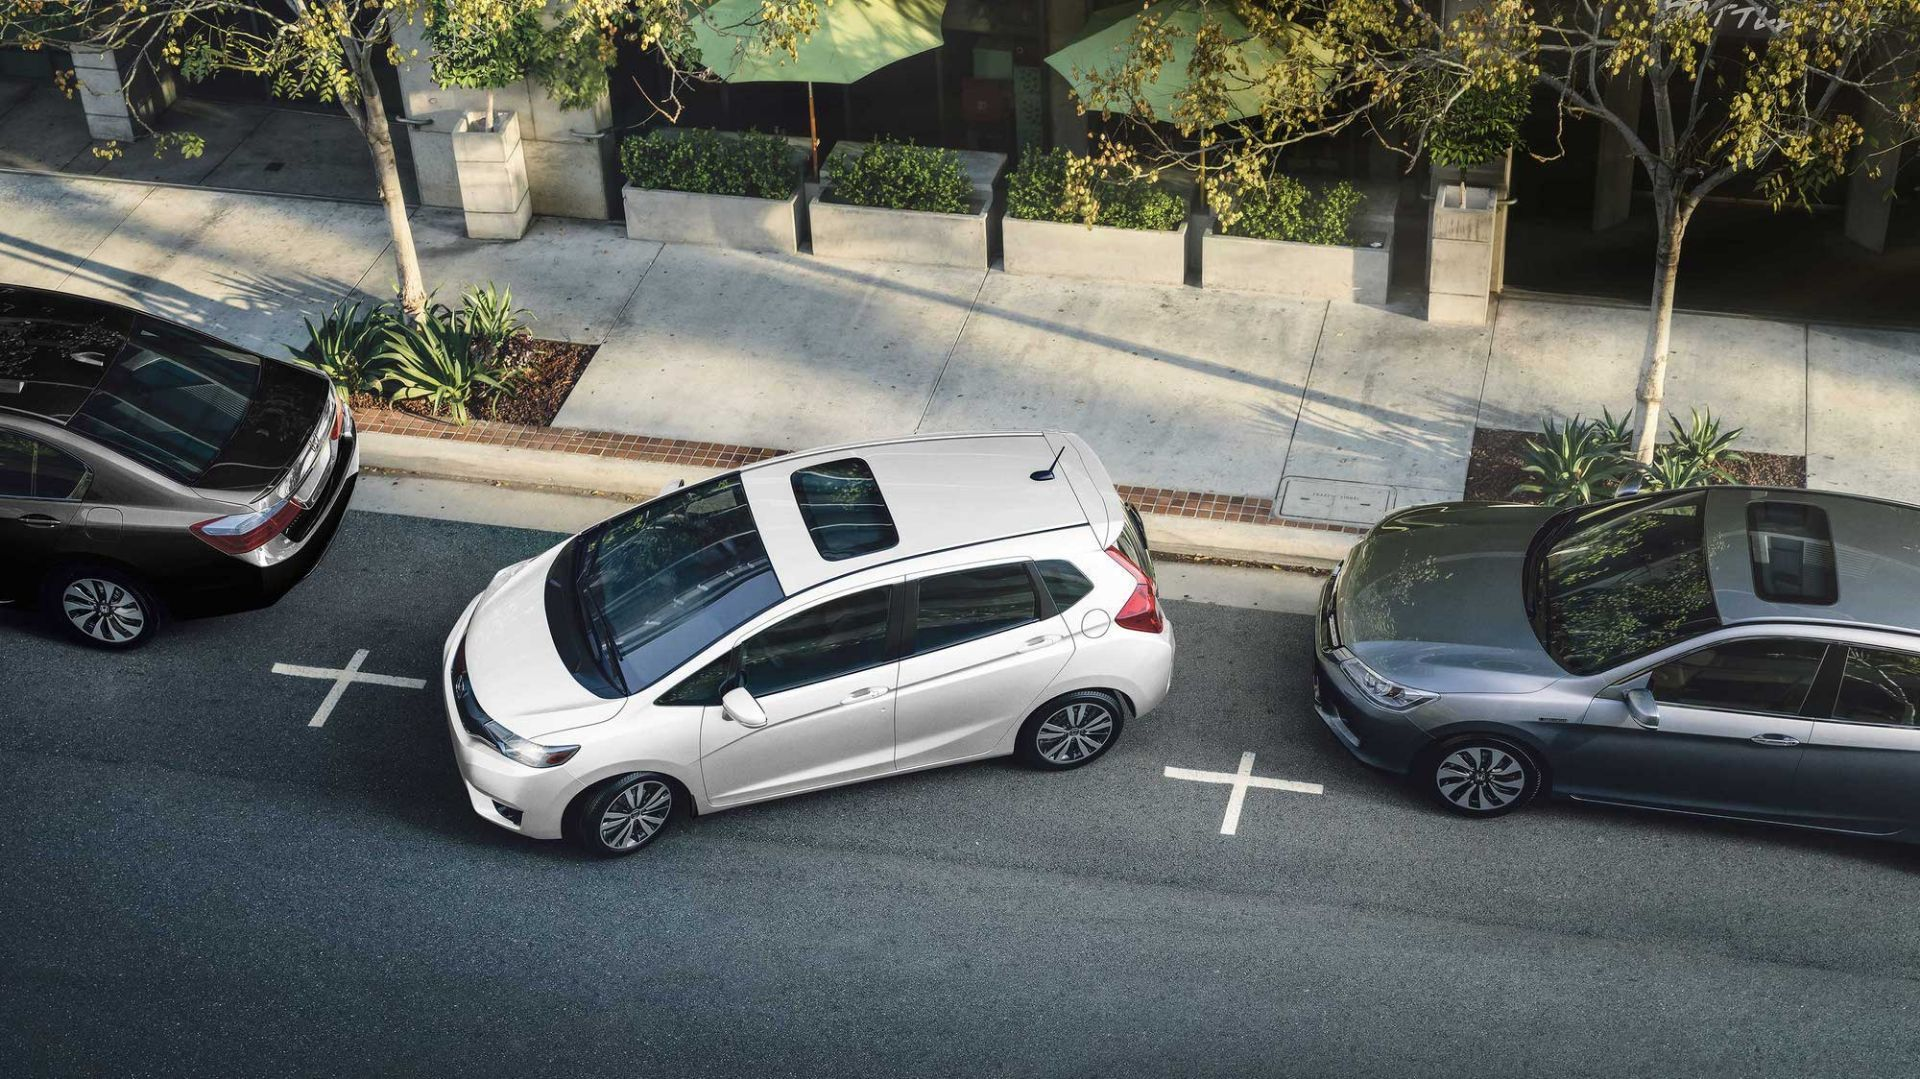 Honda Fit Hard to Beat as an Economy Car Choice